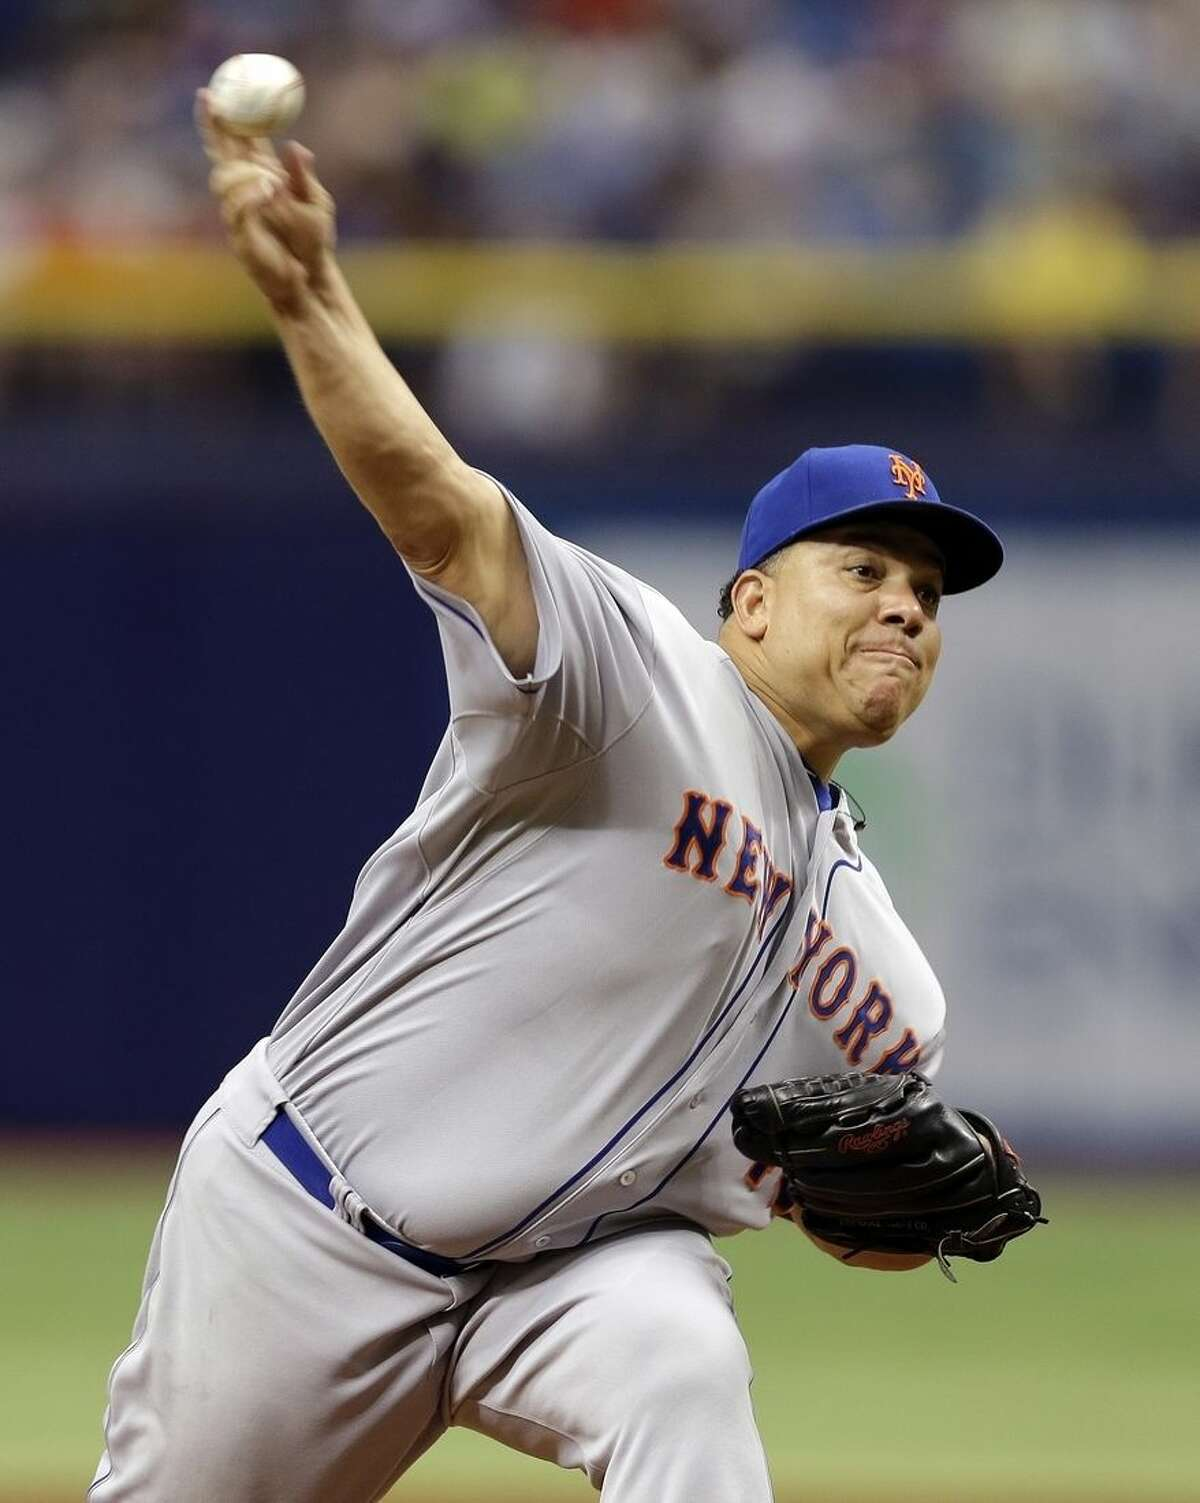 New York Mets starting pitcher Bartolo Colon delivers to the Tampa Bay Rays during the first inning of an interleague baseball game Sunday, Aug. 9, 2015, in St. Petersburg, Fla. (AP Photo/Chris O'Meara)